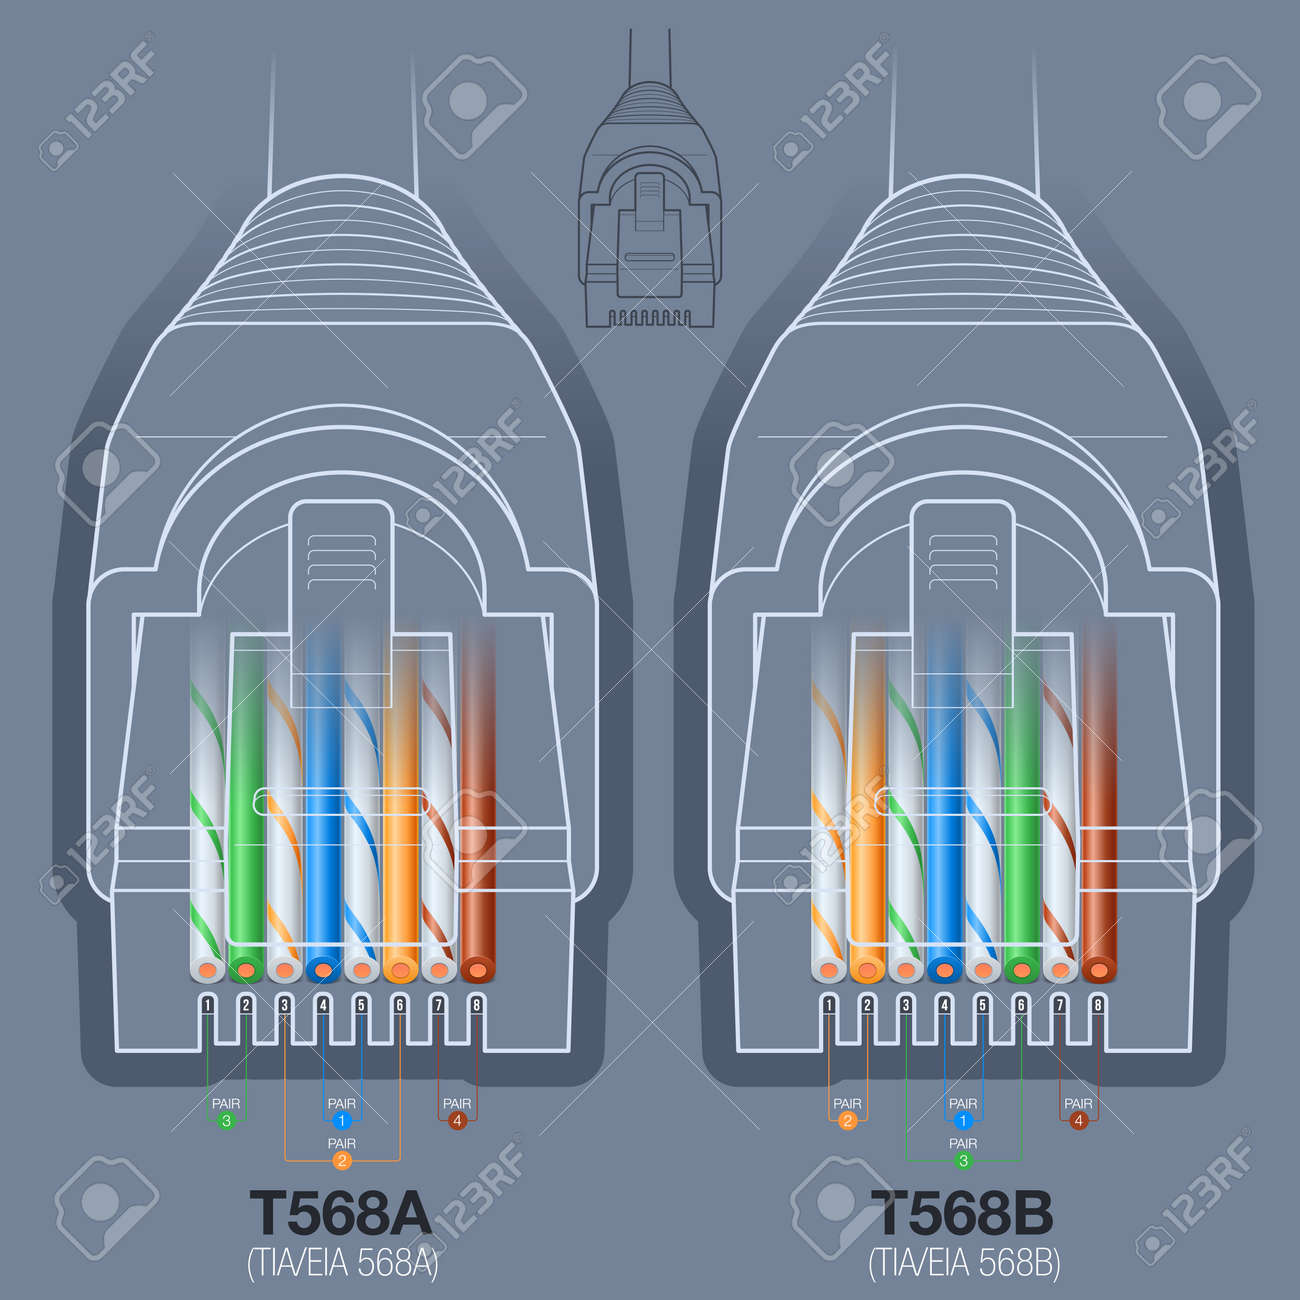 hight resolution of rj45 network cable connector t568a t568b wiring diagram royaltyrj45 network cable connector t568a t568b